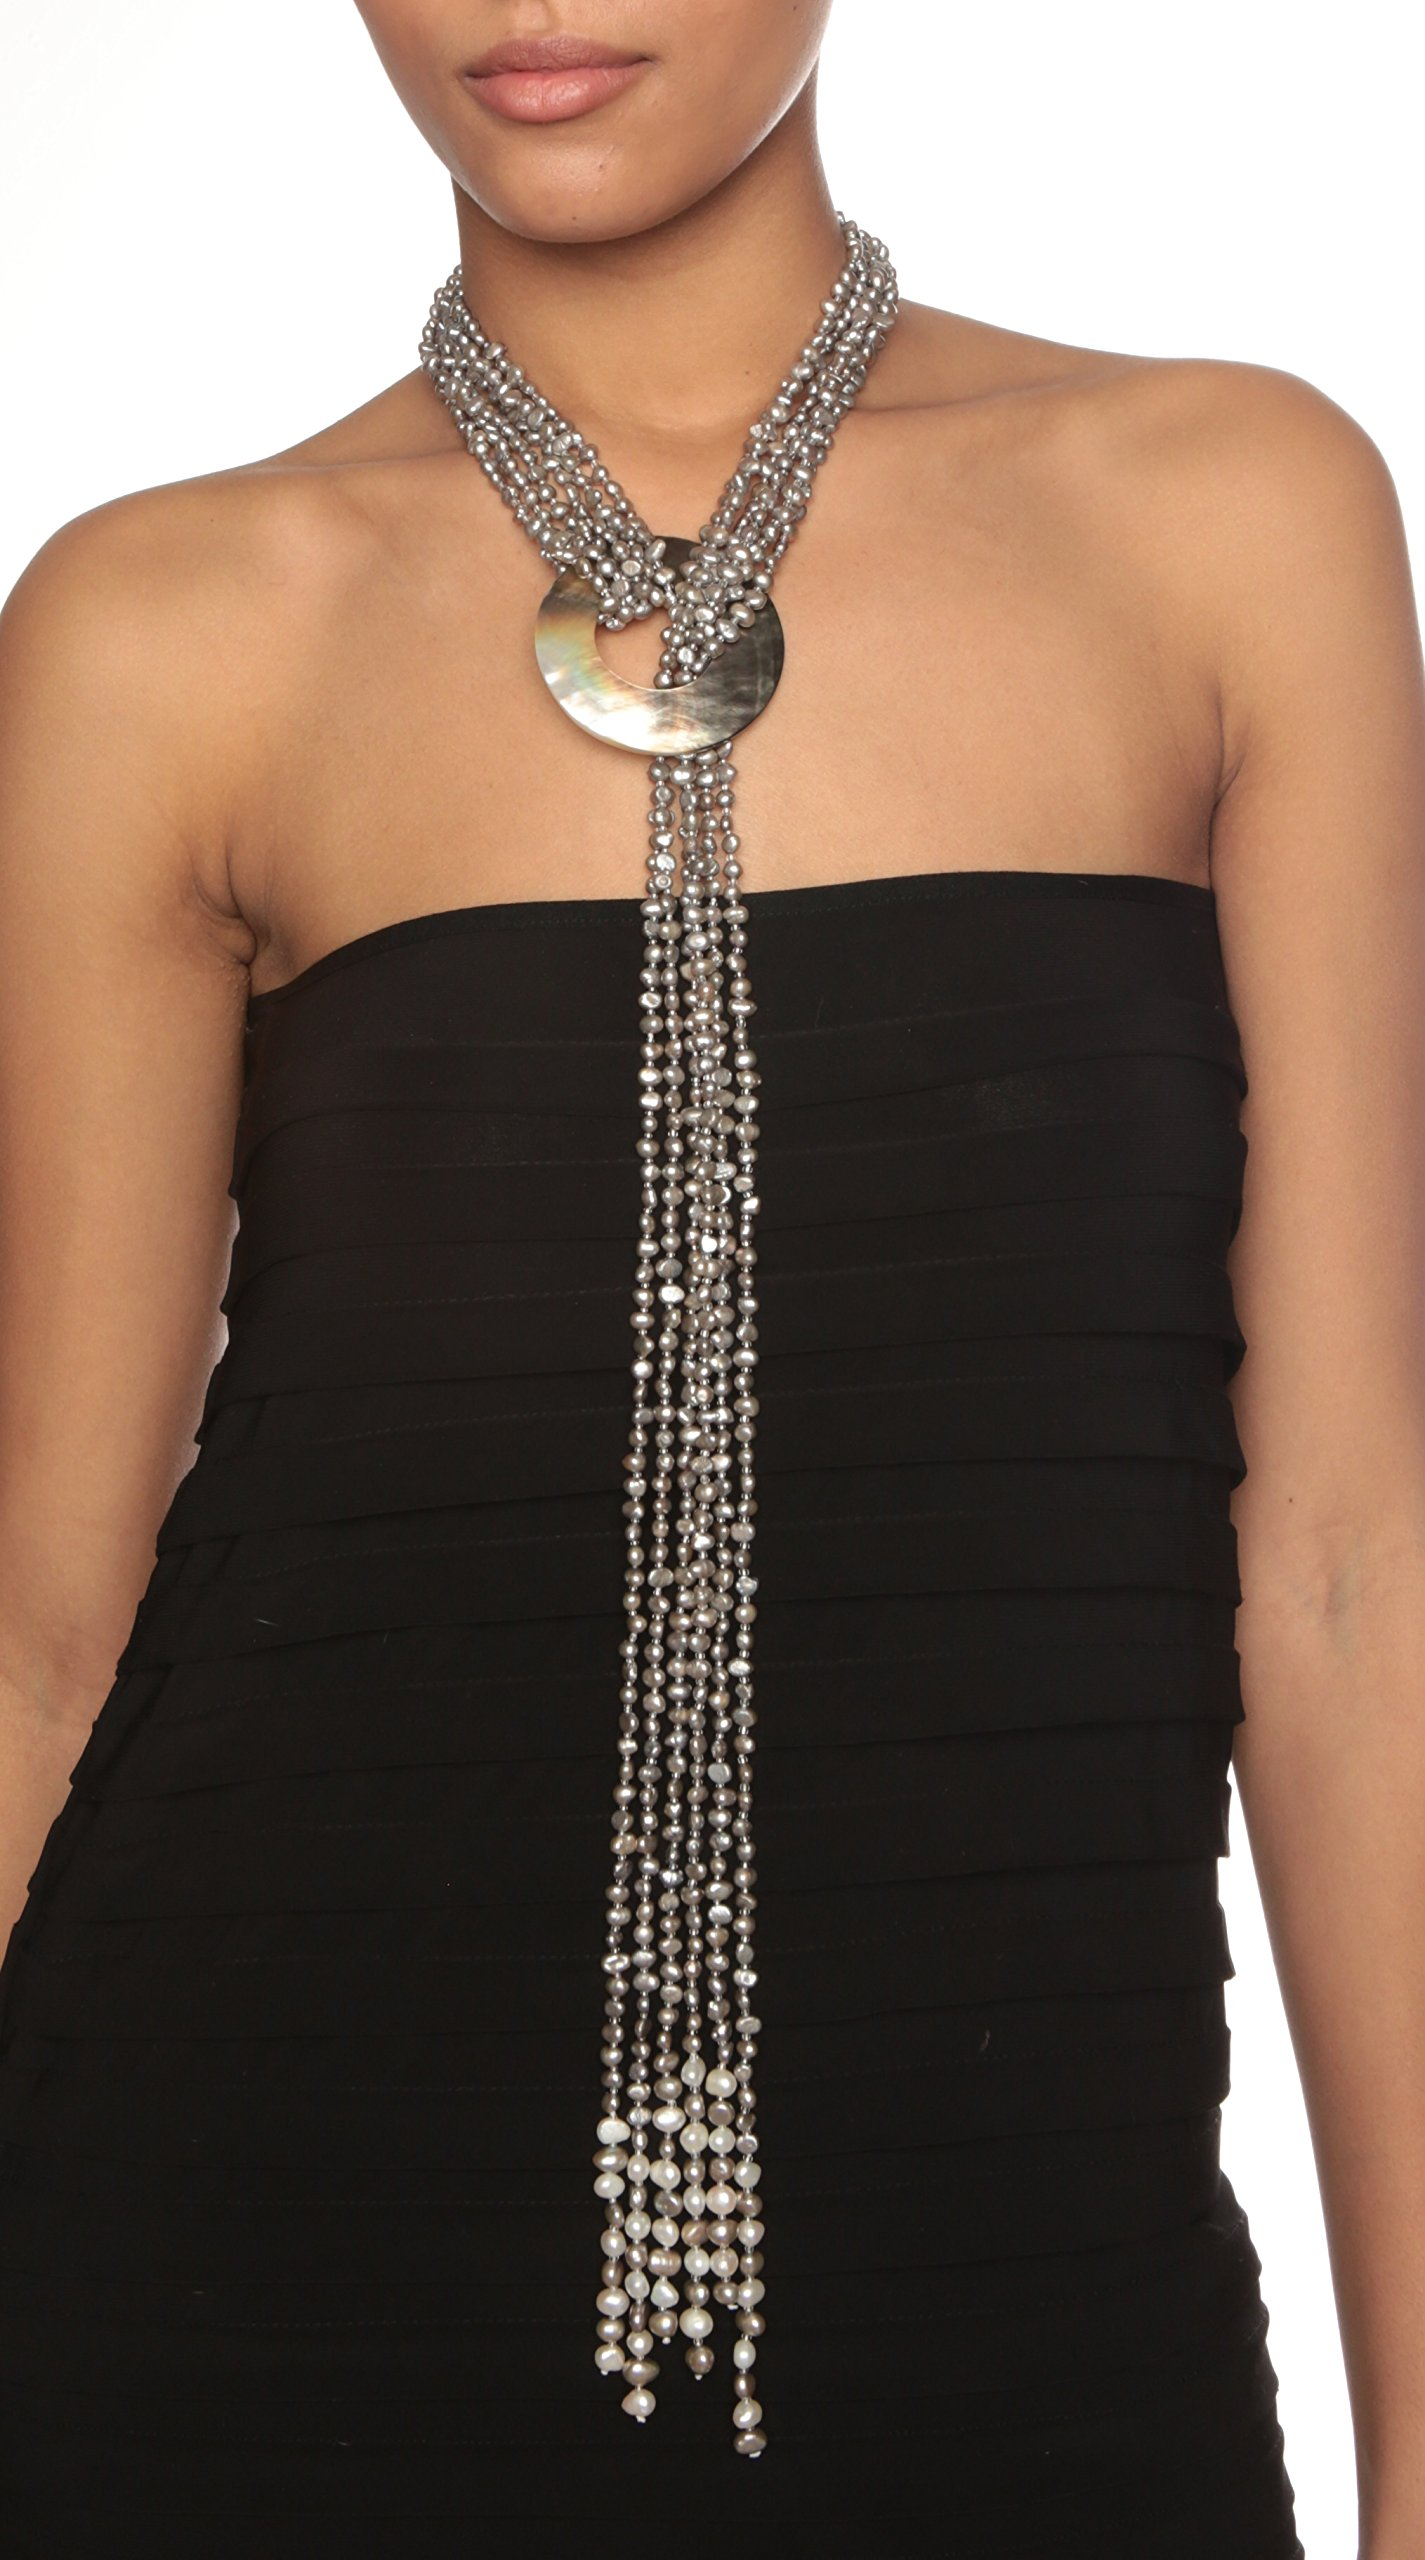 HinsonGayle 'Cleopatra' 6-Strand Silver Gray Cultured Freshwater Pearl & Shell Lariat Y Necklace-35 in length by HinsonGayle Fine Pearl Jewelry (Image #4)